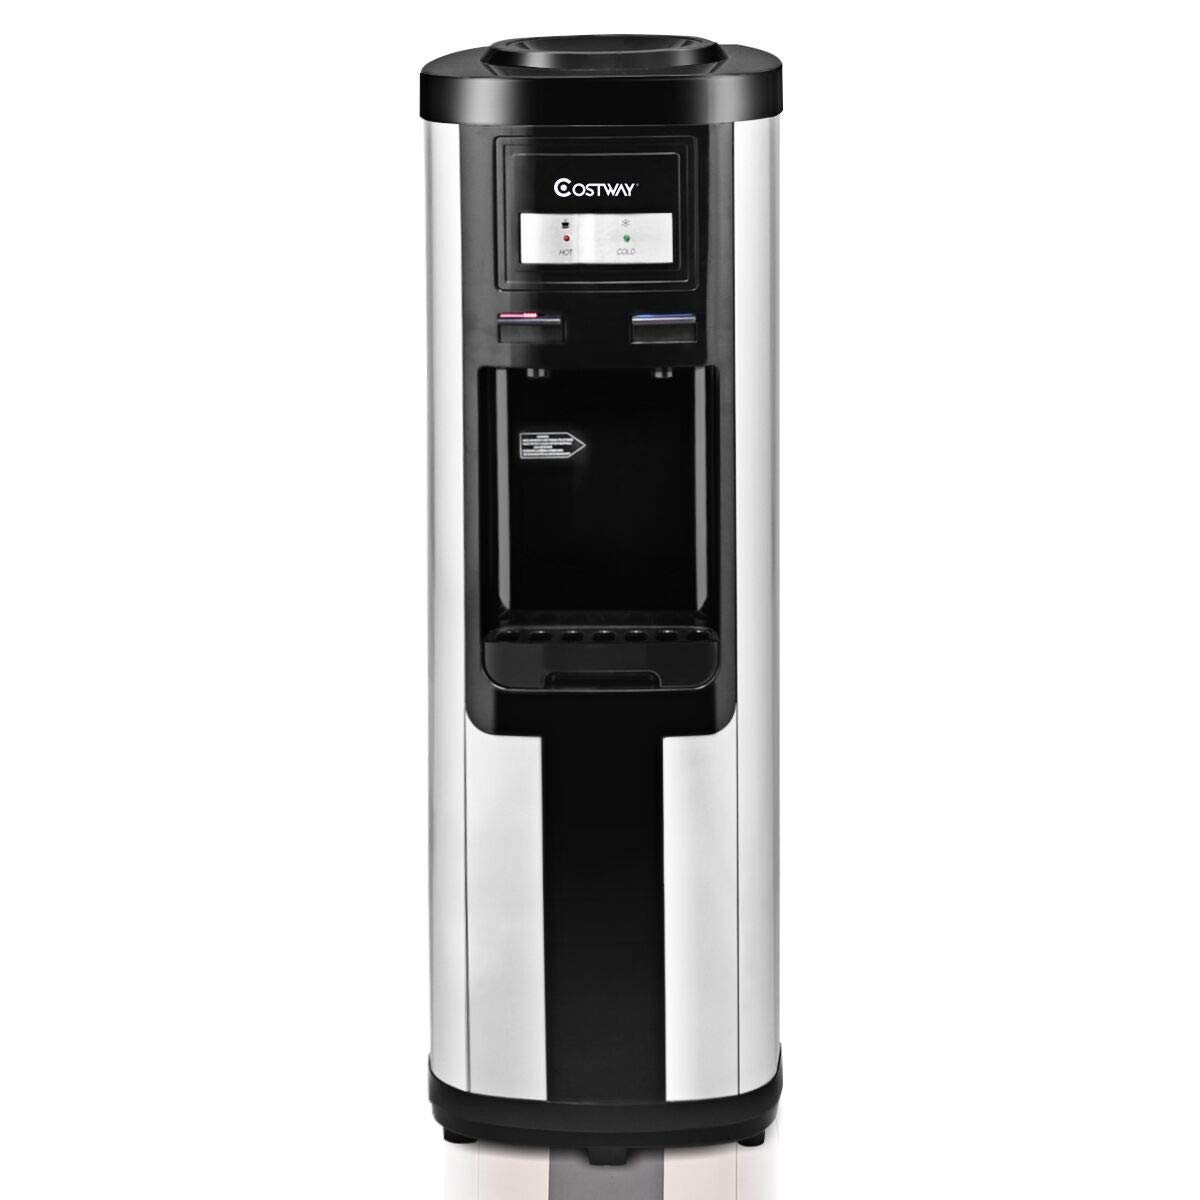 Costway Water Cooler Dispenser 5 Gallon Top Loading Water Dispenser Stainless Steel Freestanding Water Cooler W/Hot and Cold Water (Black and Silver) by COSTWAY (Image #8)